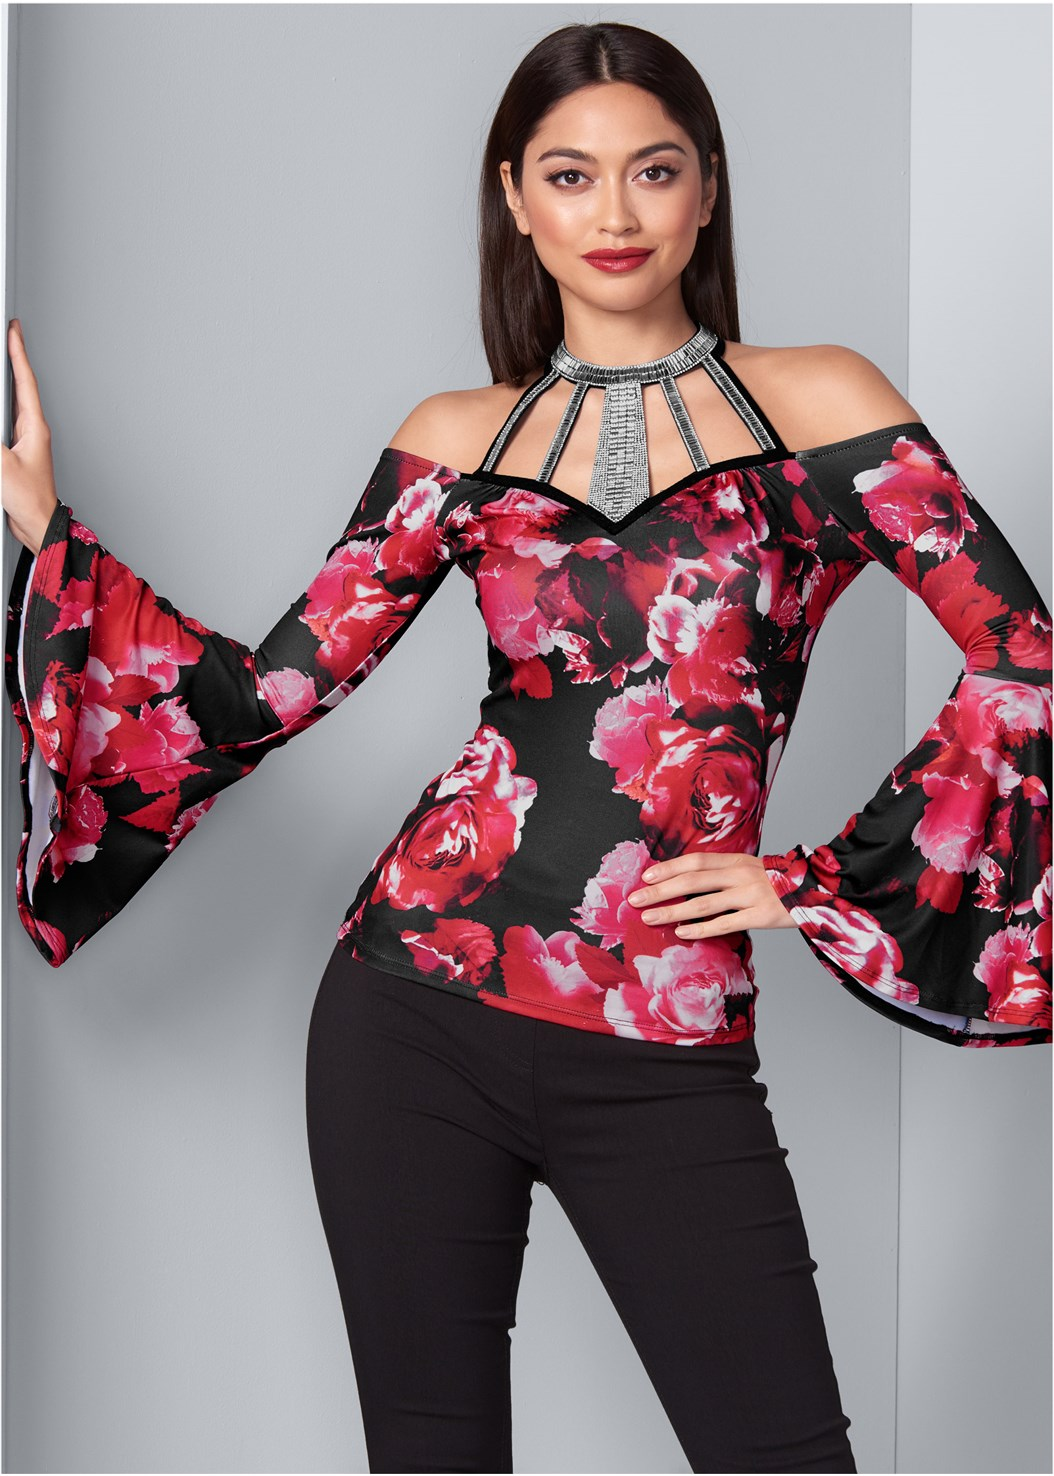 Floral Bell Sleeve Top,Mid Rise Full Length Slimming Stretch Jeggings,Faux Leather Leggings